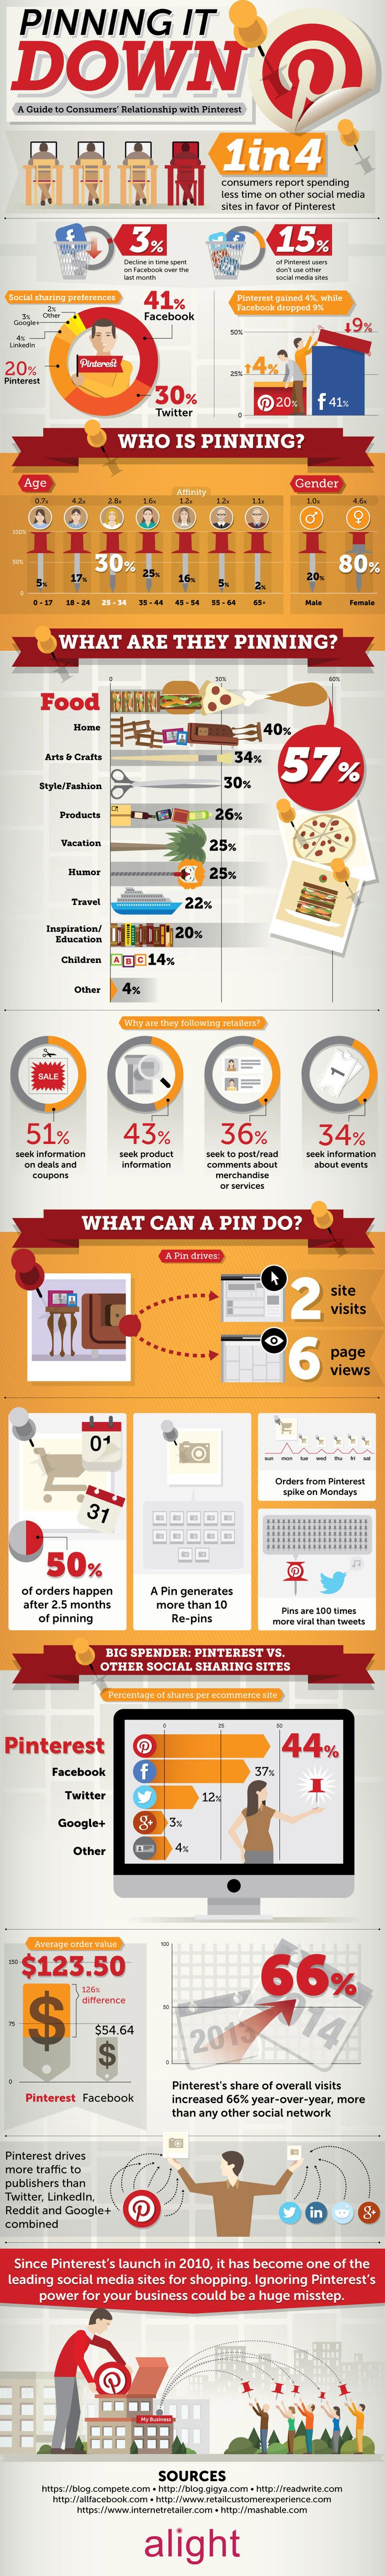 [Infographic] Pinning It Down: A Guide to Consumers' Relationship with Pinterest